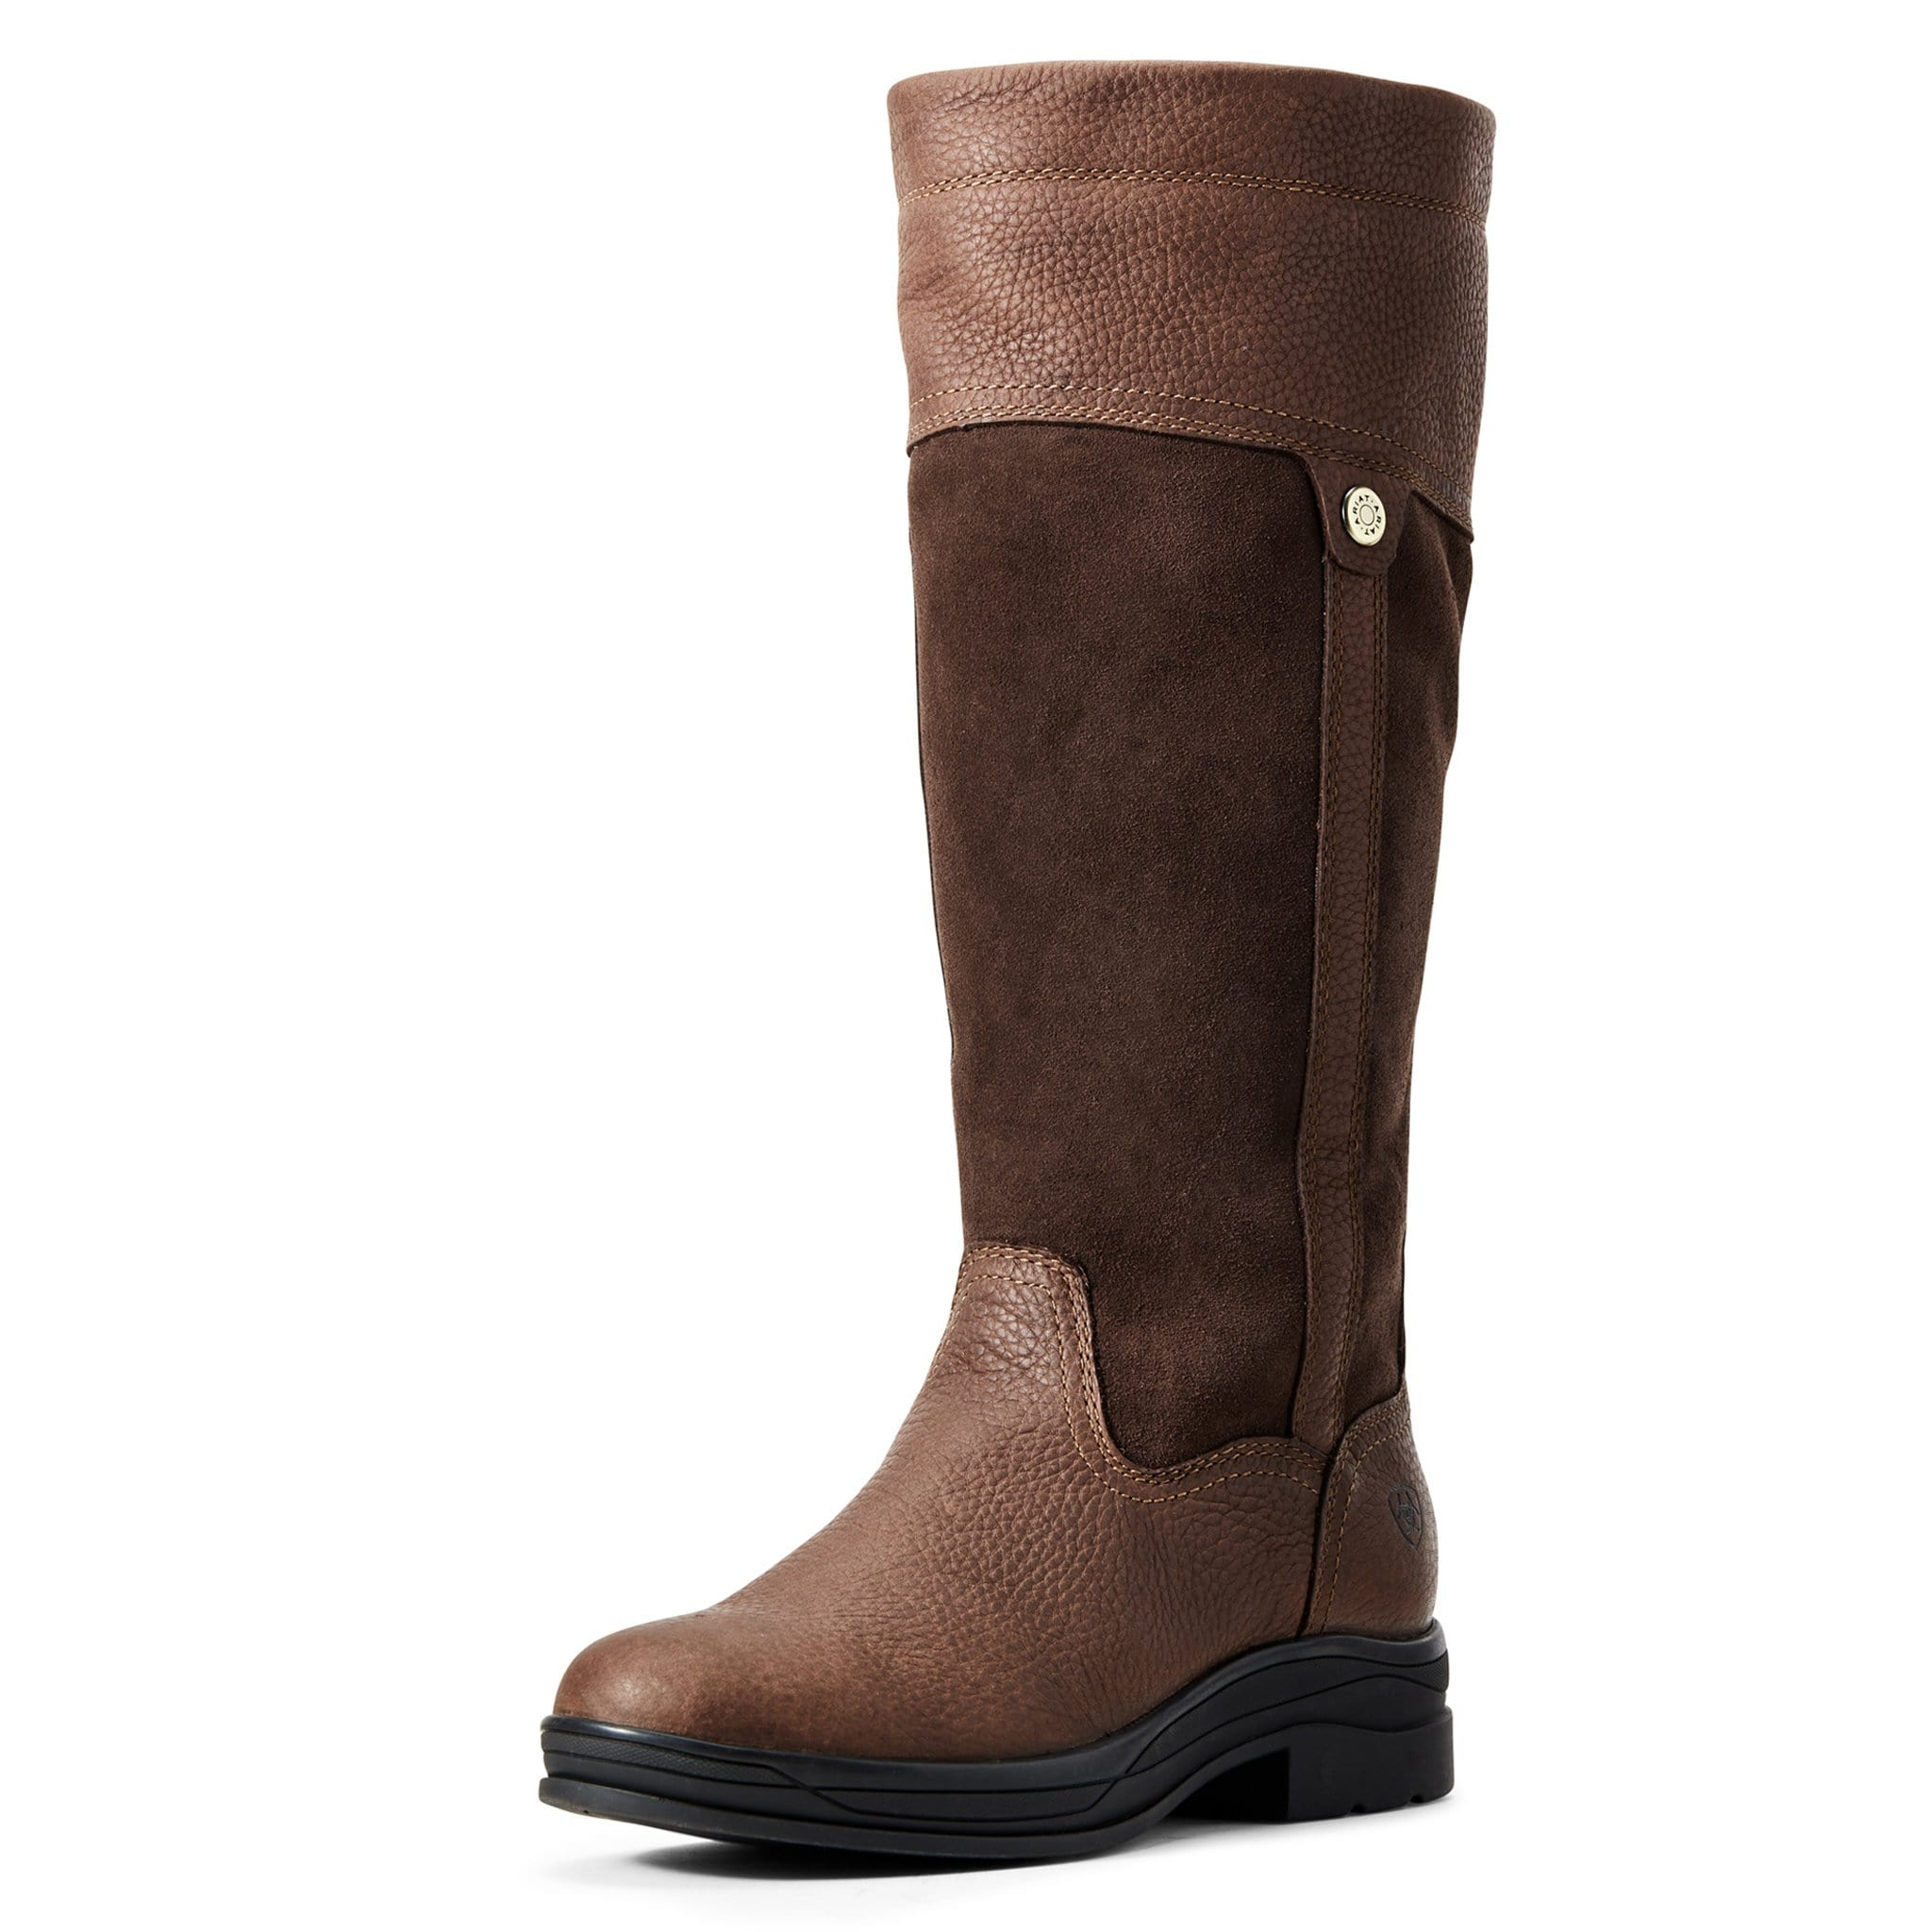 Ariat Windermere II Waterproof Boots 10029553 Brown Front Side